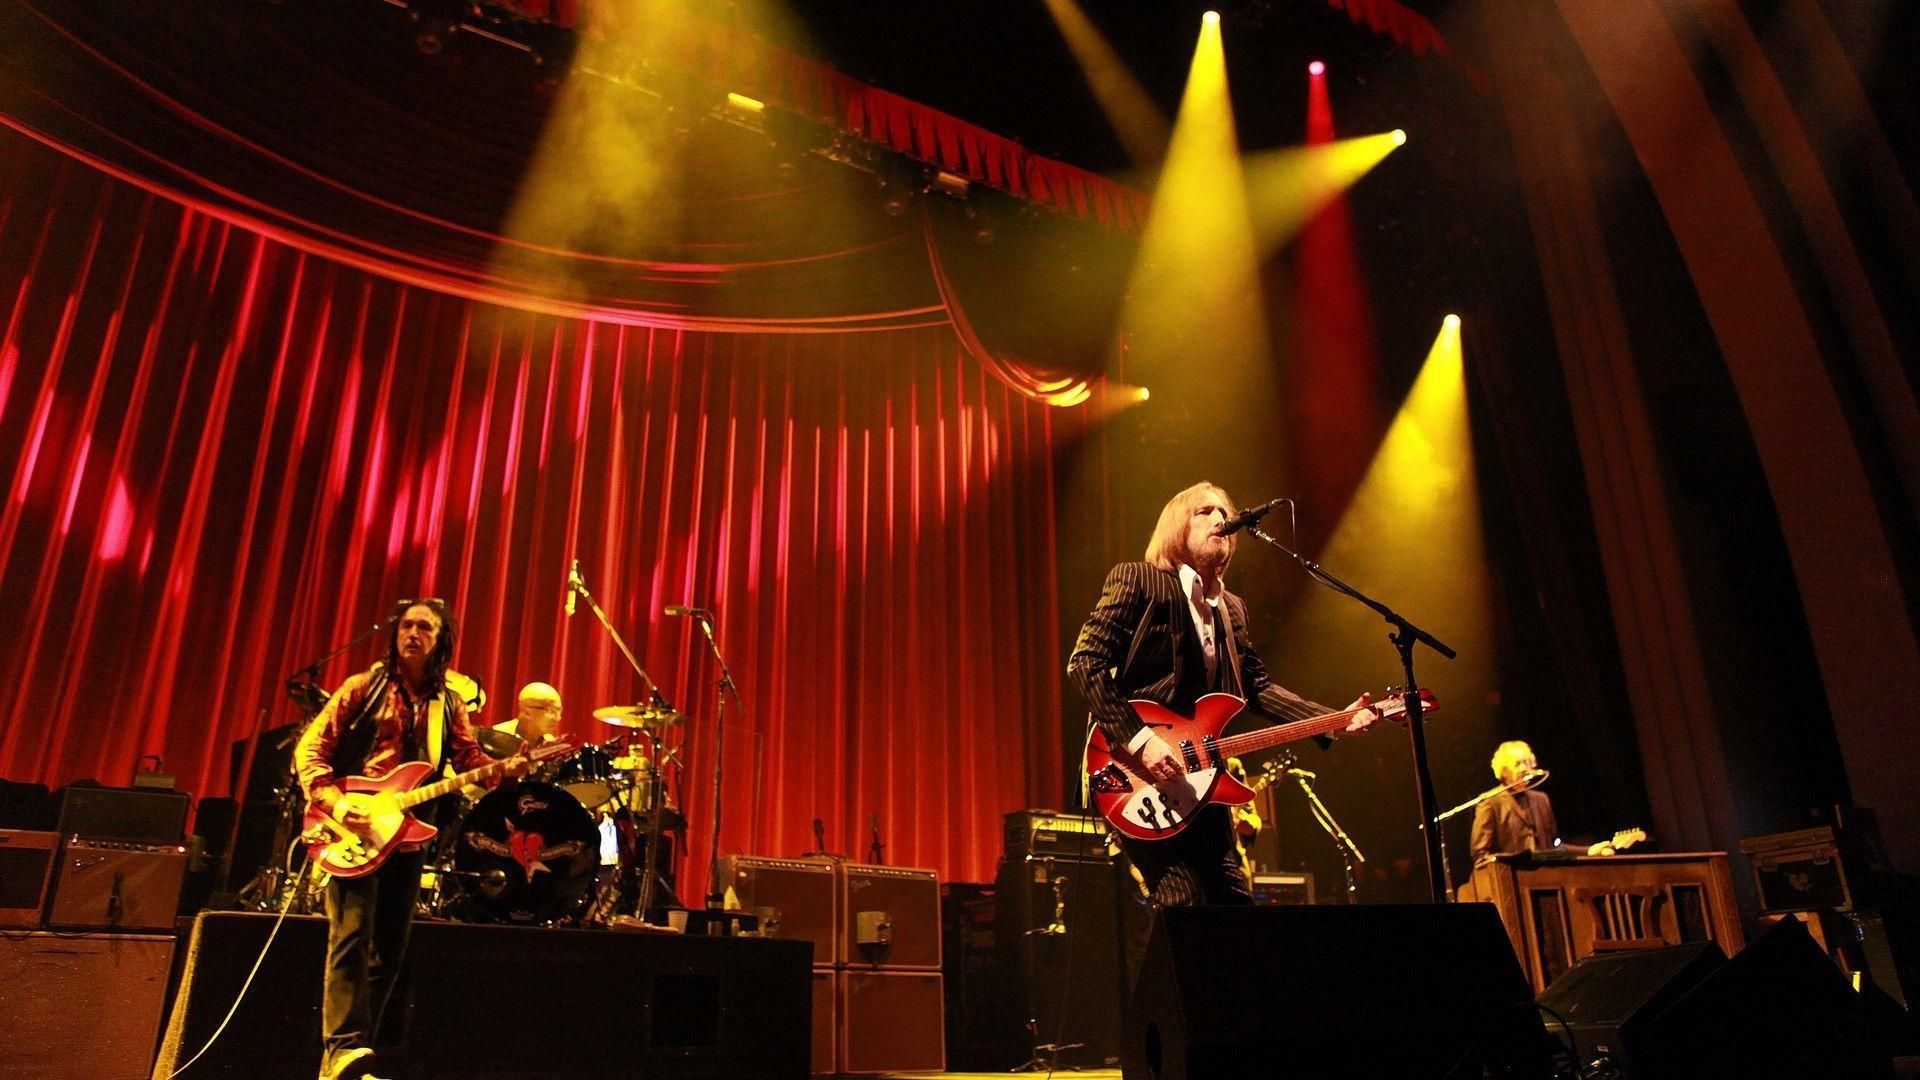 Tom Petty And The Heartbreakers Wallpaper - Viewing Gallery